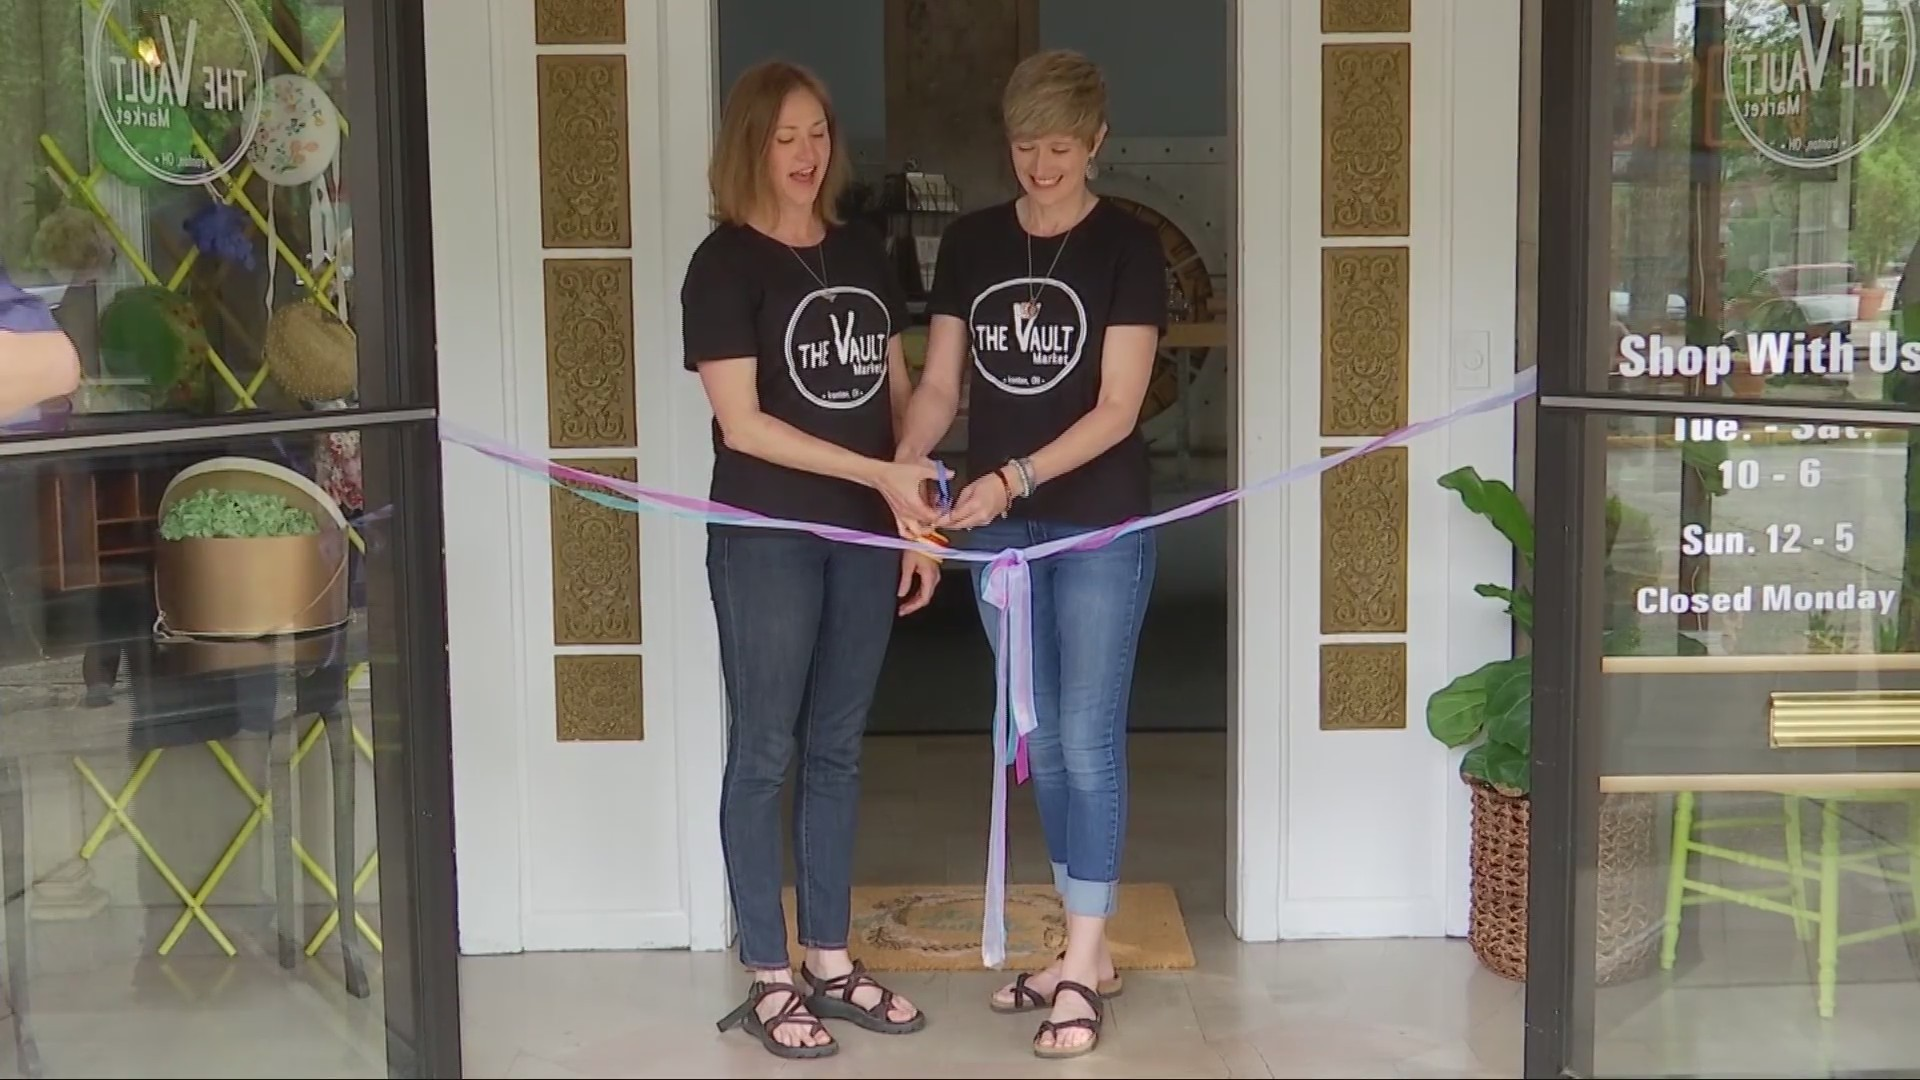 Collaborative downtown shop opens doors